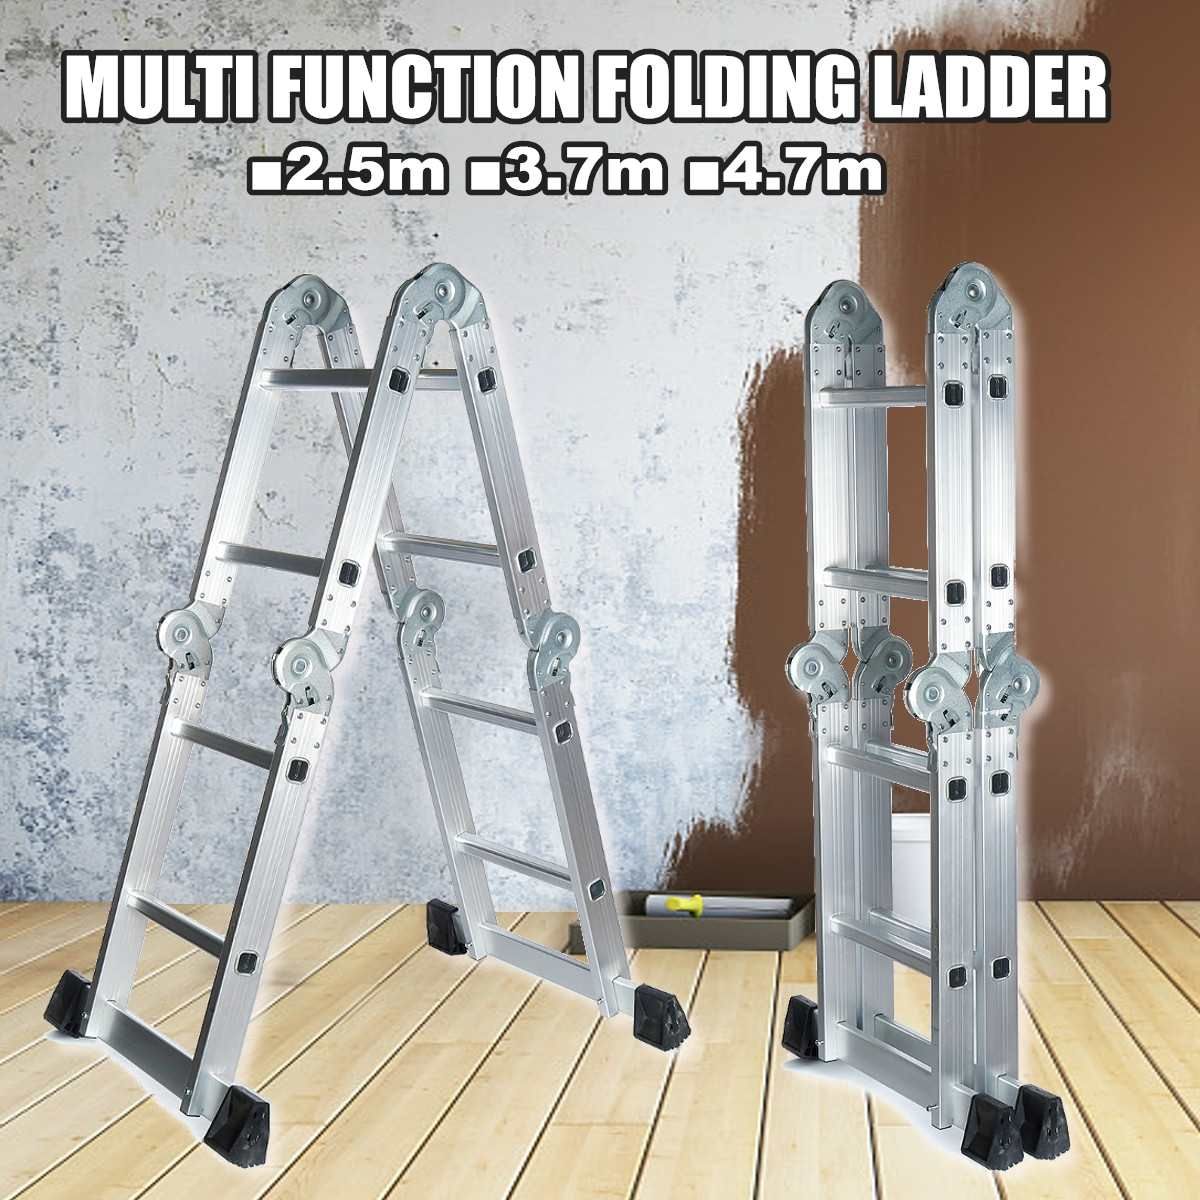 Telescopic Folding Ladder Step-Stand House Aluminium Ladders Telescoping Multi-Purpose Extension Folding Step Ladder 2.5m